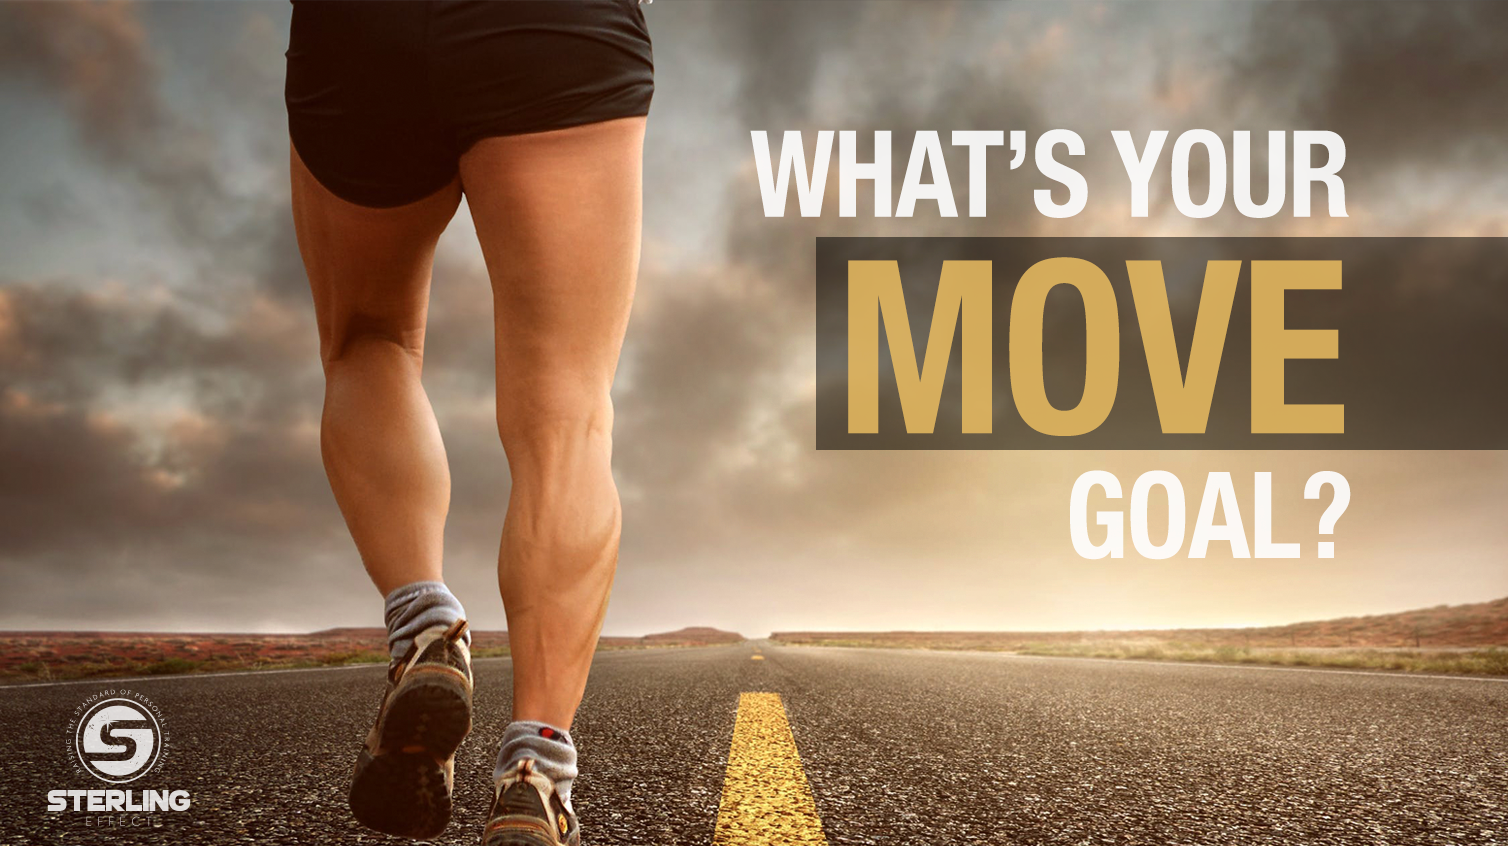 What's your daily move goal? 100Cal?,200cal?,300cal?